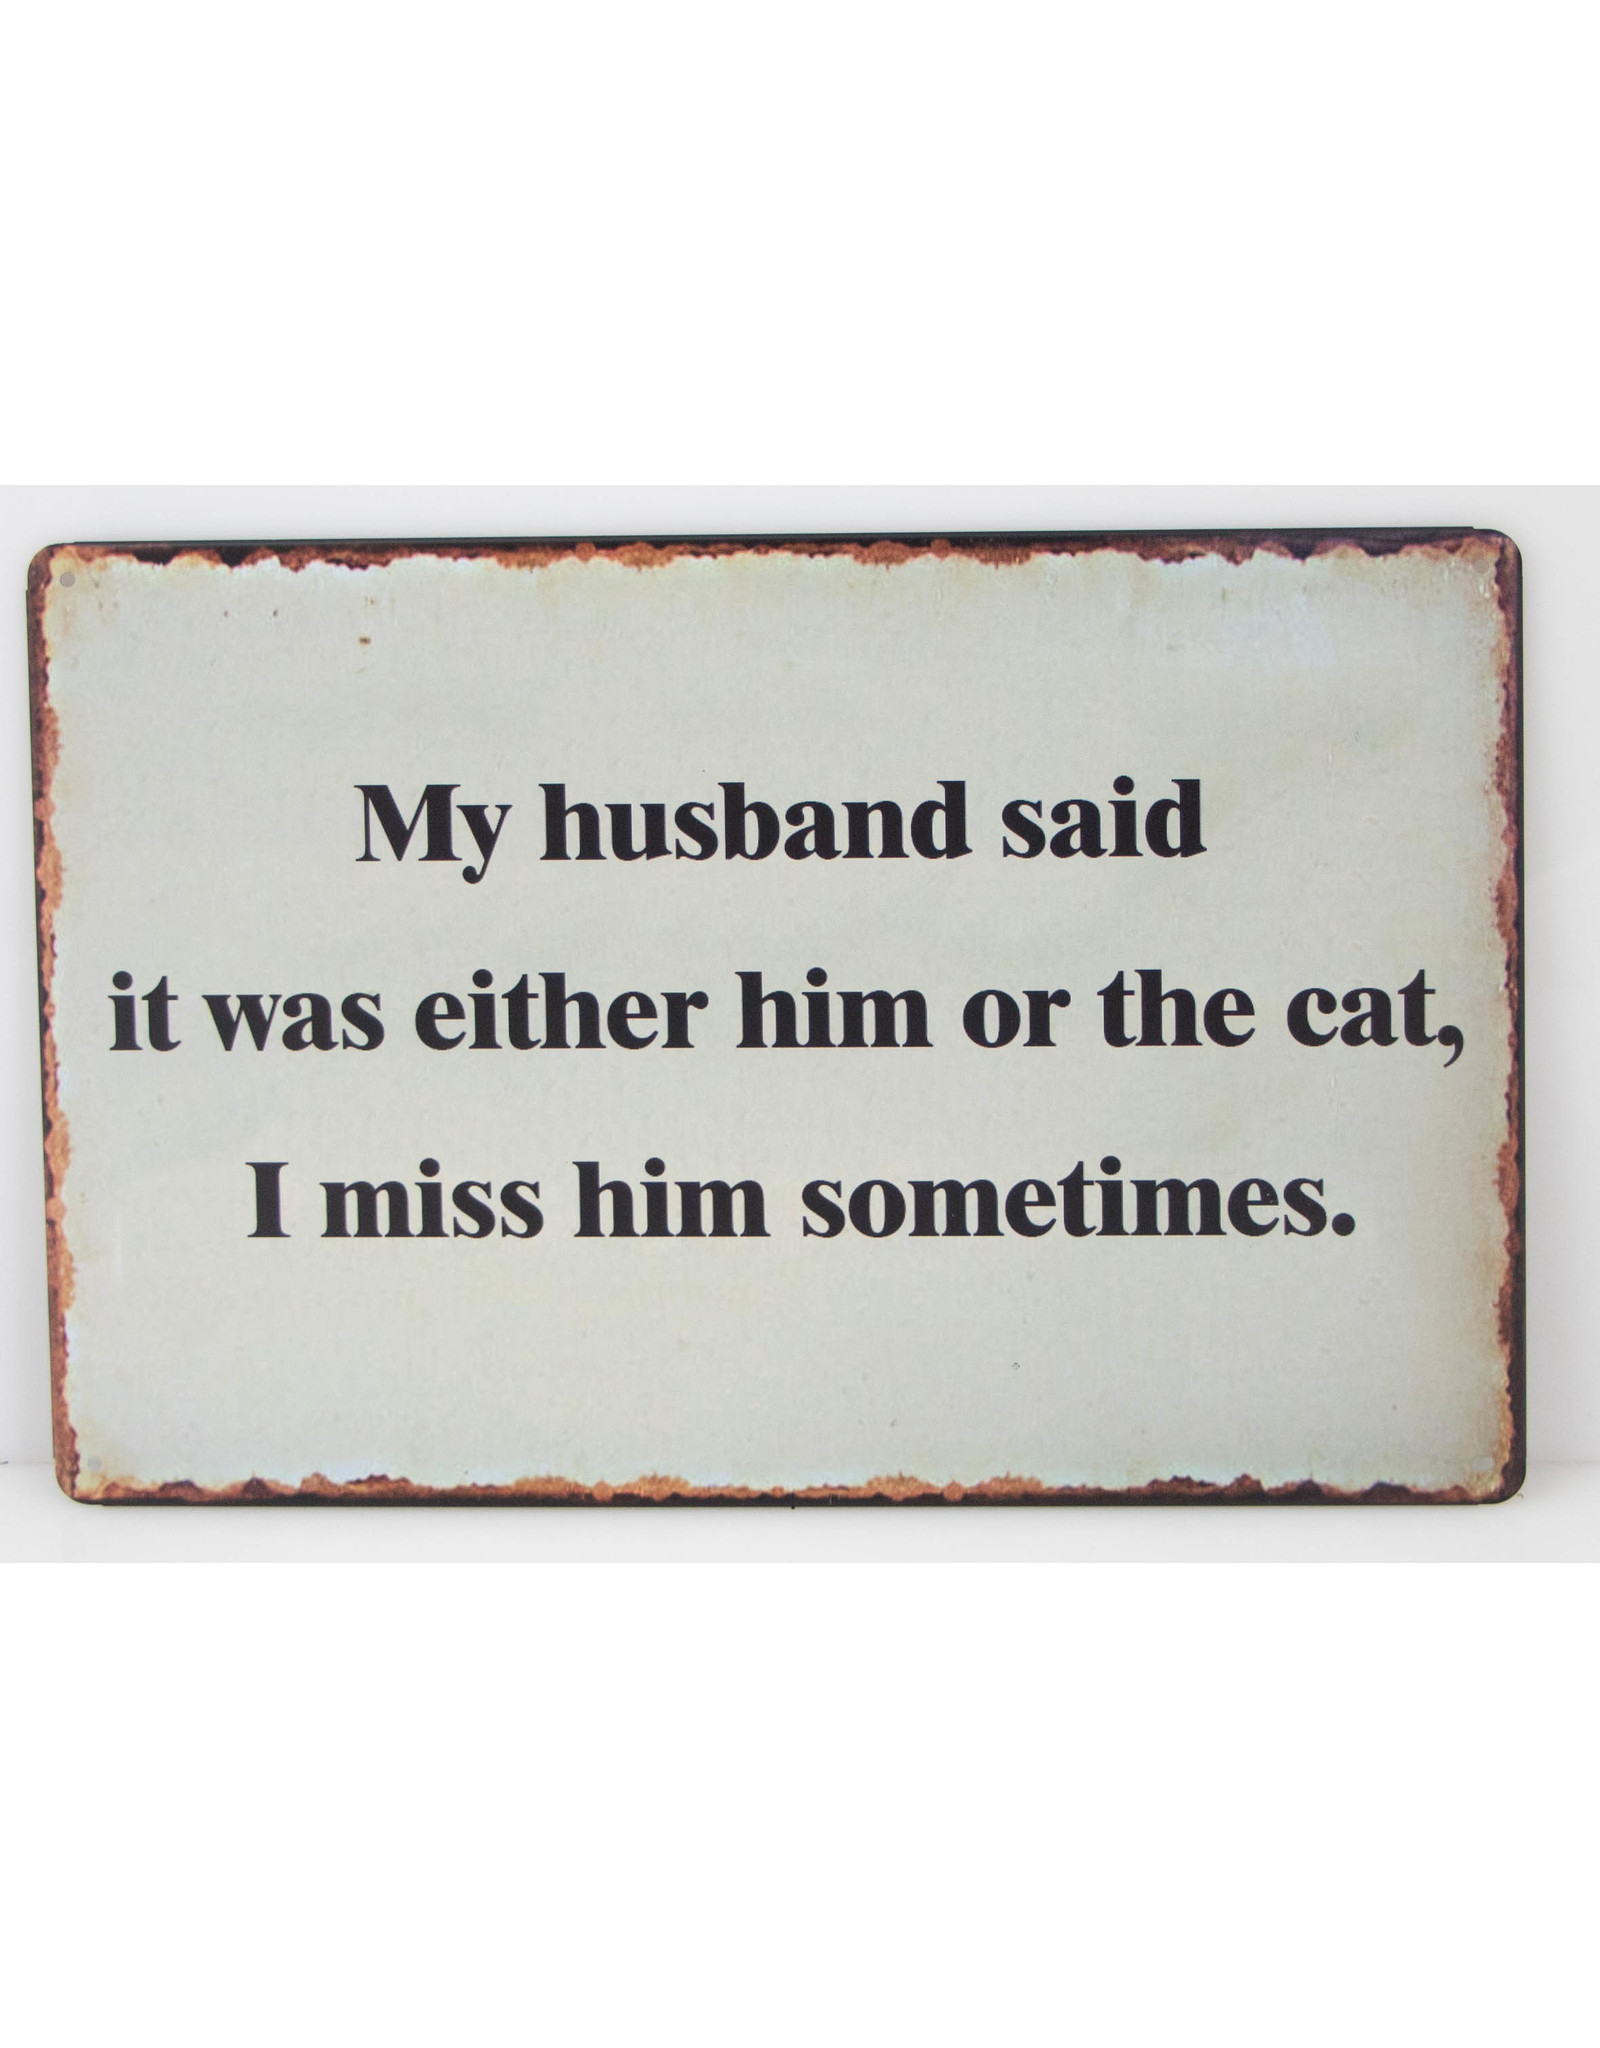 My husband said...